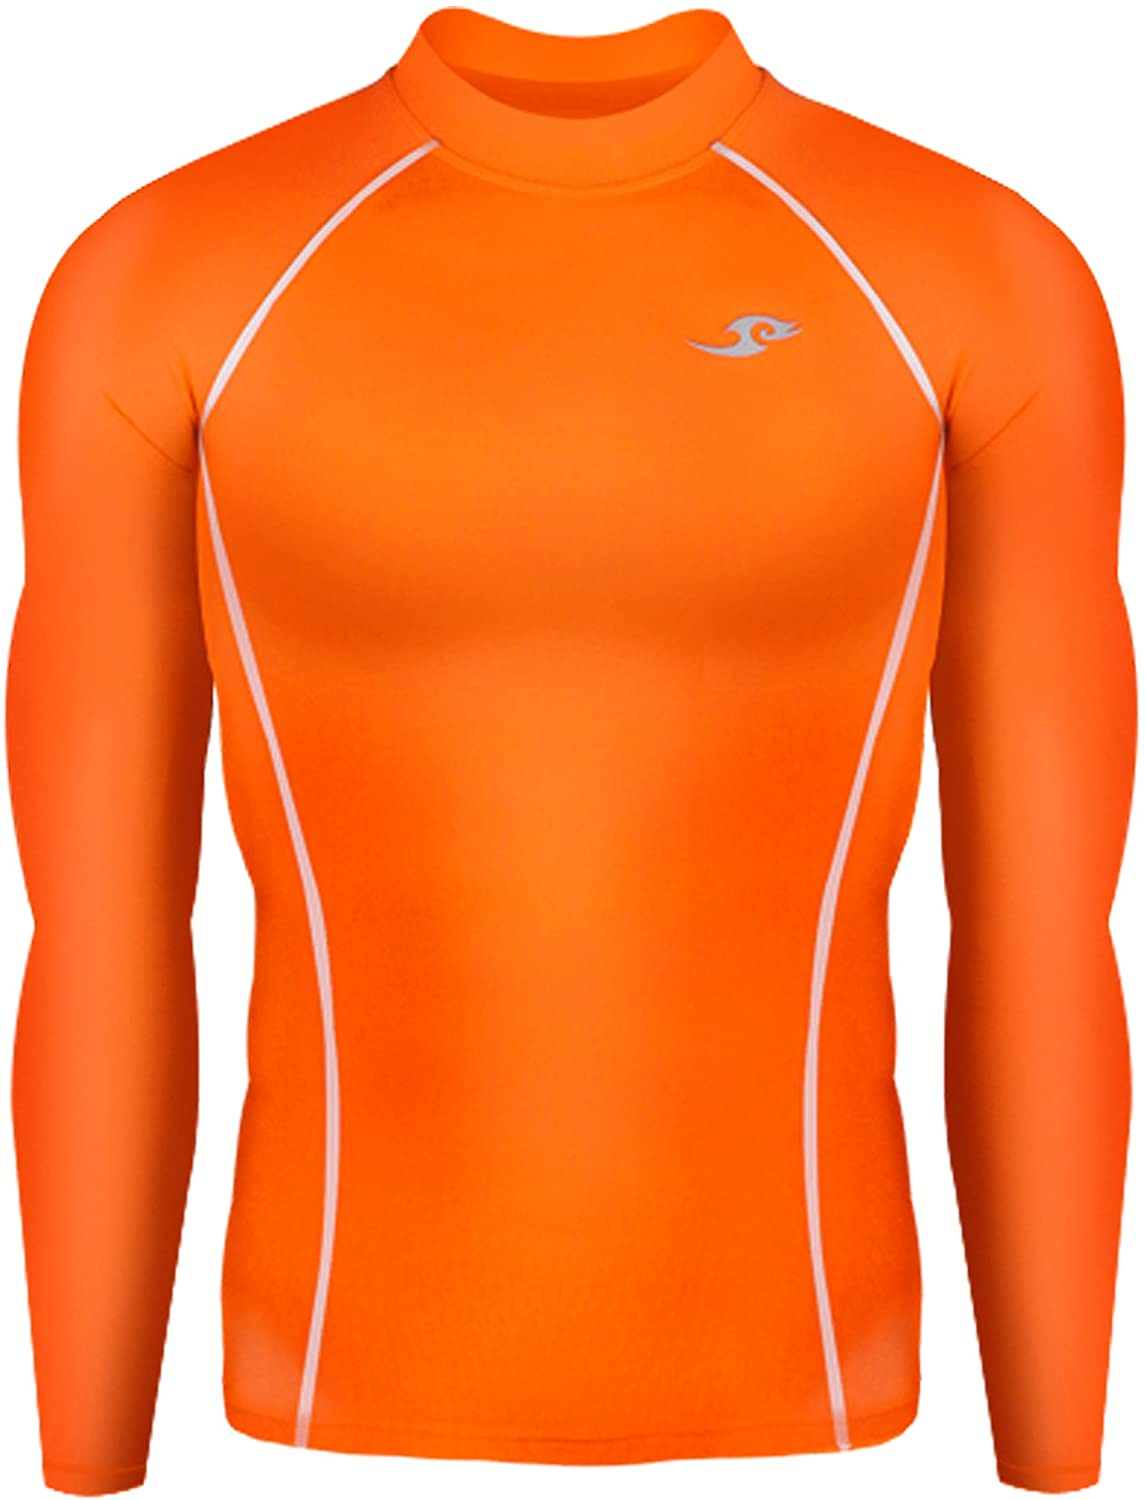 c34dd3d7d58 New 137 Skin Tight Compression Base Layer Orange Running Shirt Mens   Amazon.co.uk  Sports   Outdoors